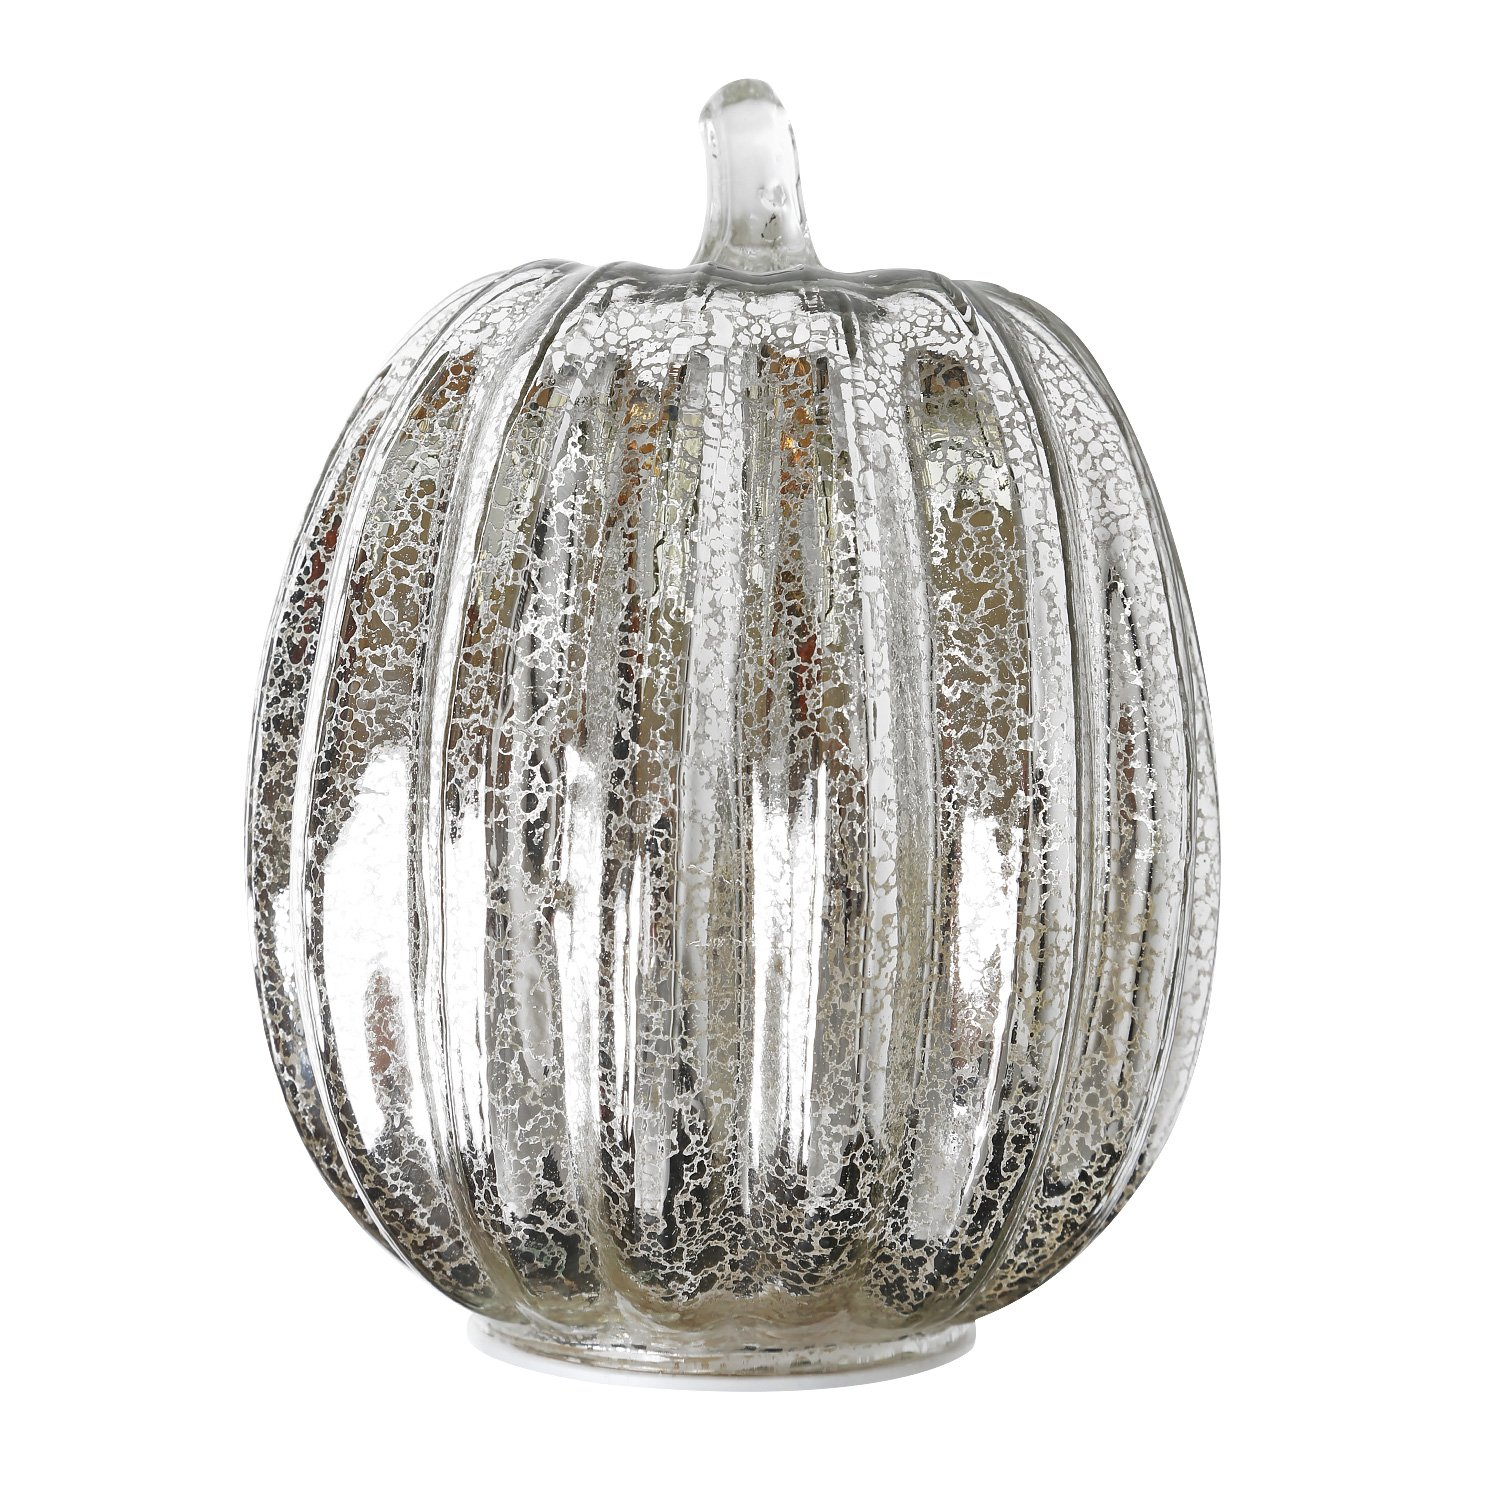 Romingo Mercury Glass Lighted Pumpkin with Timer for Fall and Home Decor, Silver, 7.5 inches by Romingo